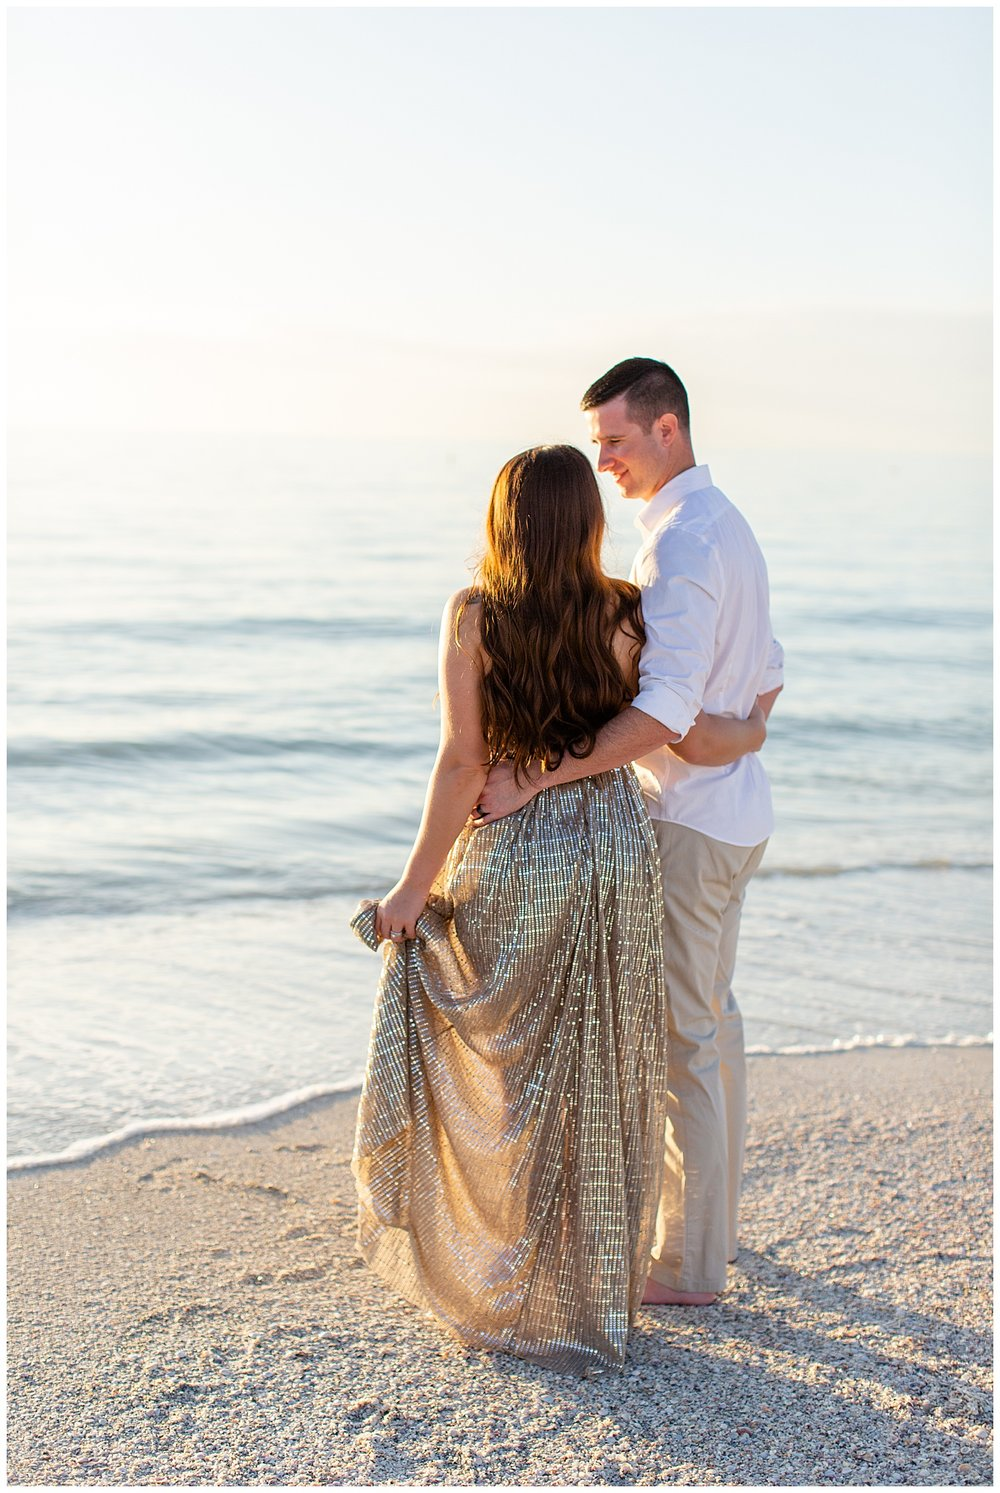 emily-belson-photography-florida-engagement-21.jpg